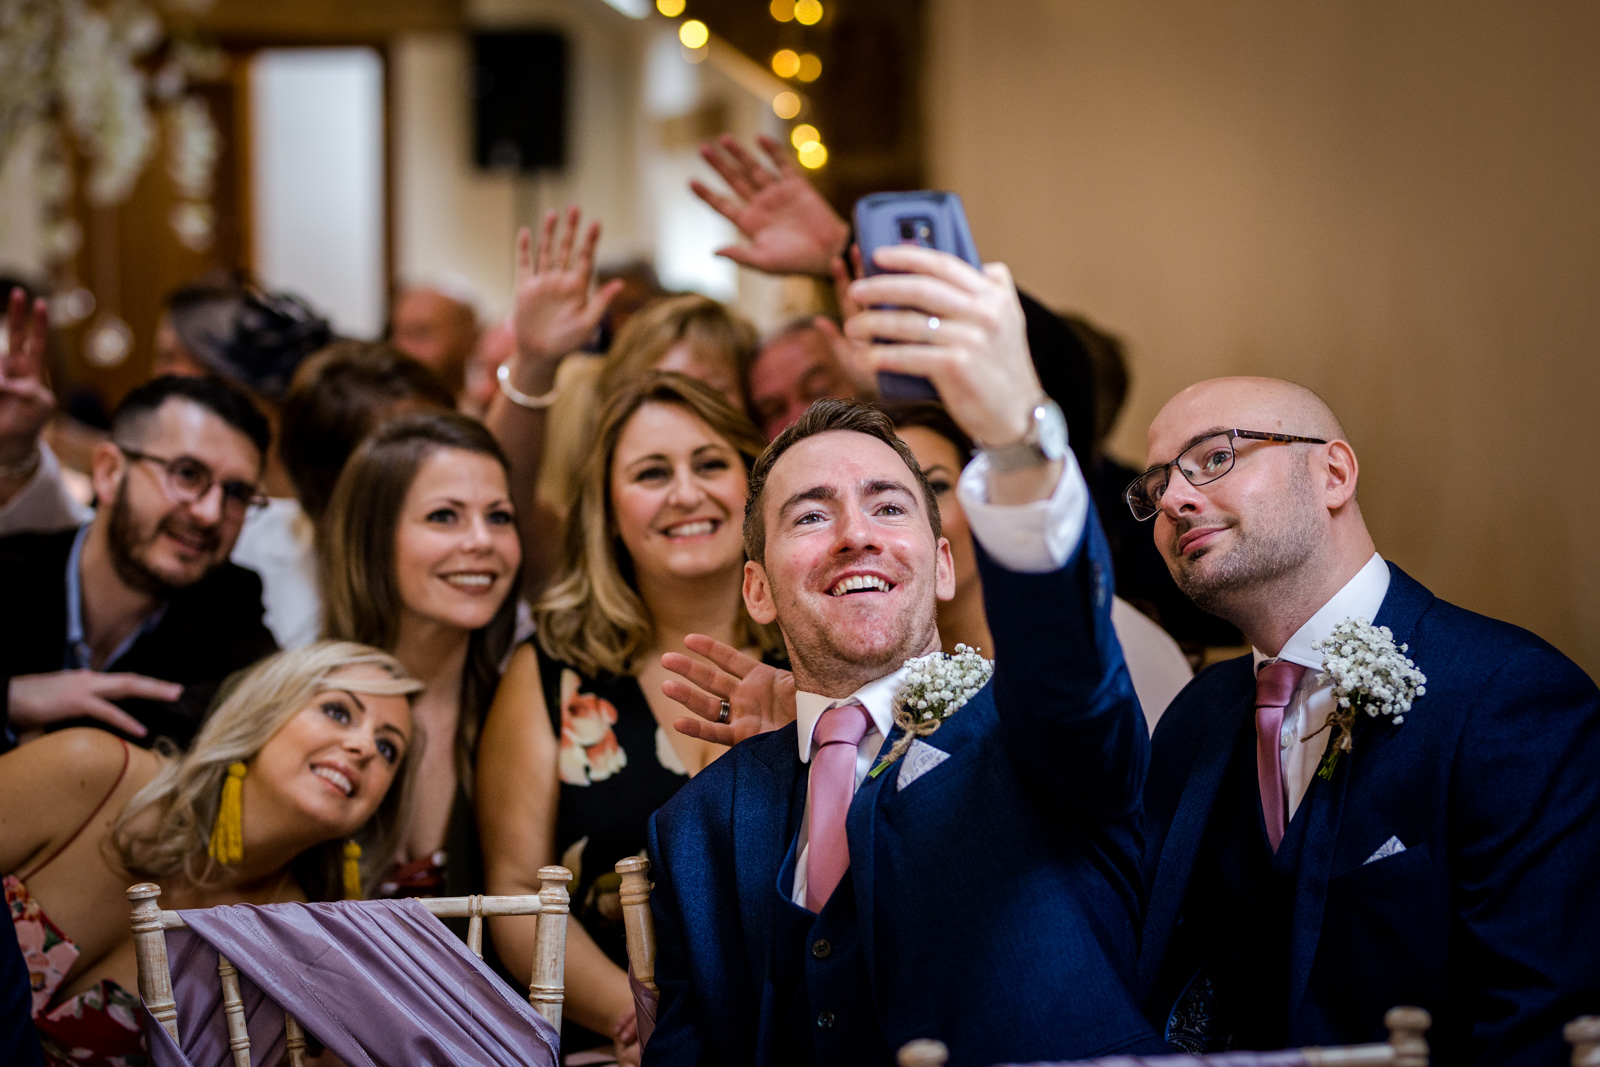 Wedding guests at a Beeston Manor Wedding